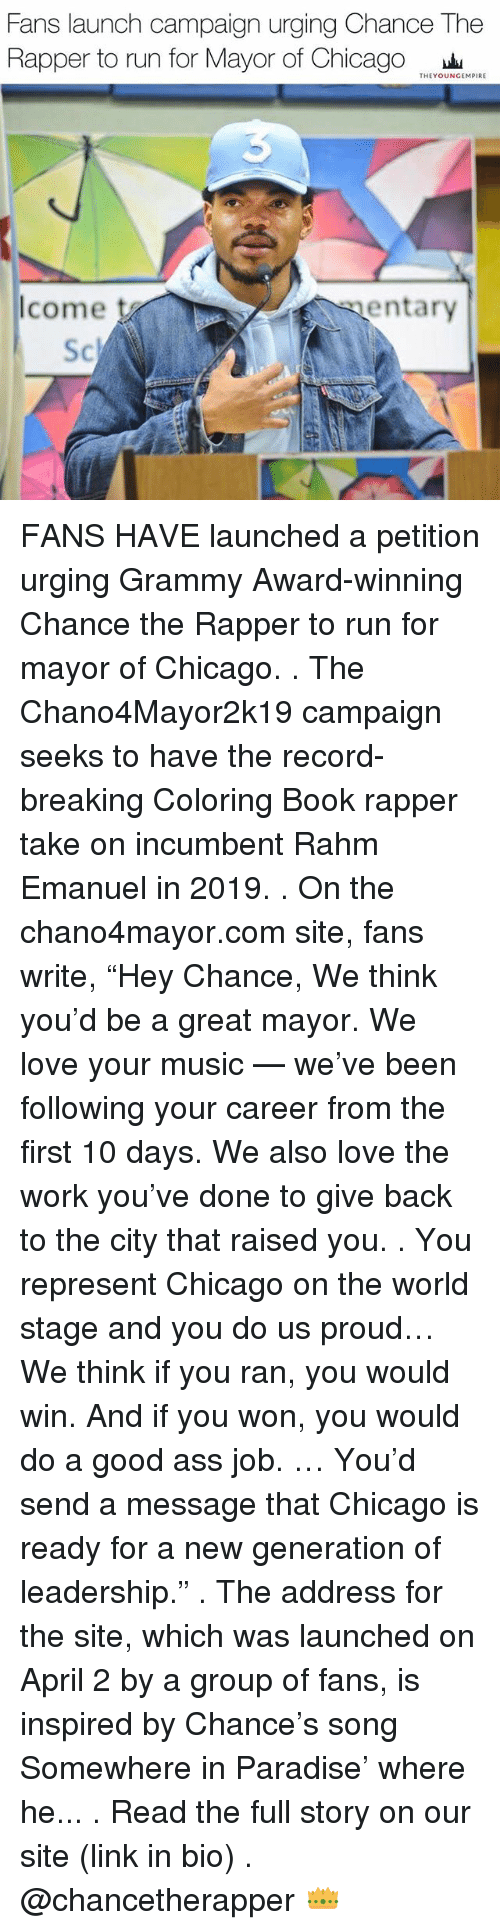 The coloring book grammy - Ass Chance The Rapper And Chicago Fans Launch Campaign Urging Chance The Rapper